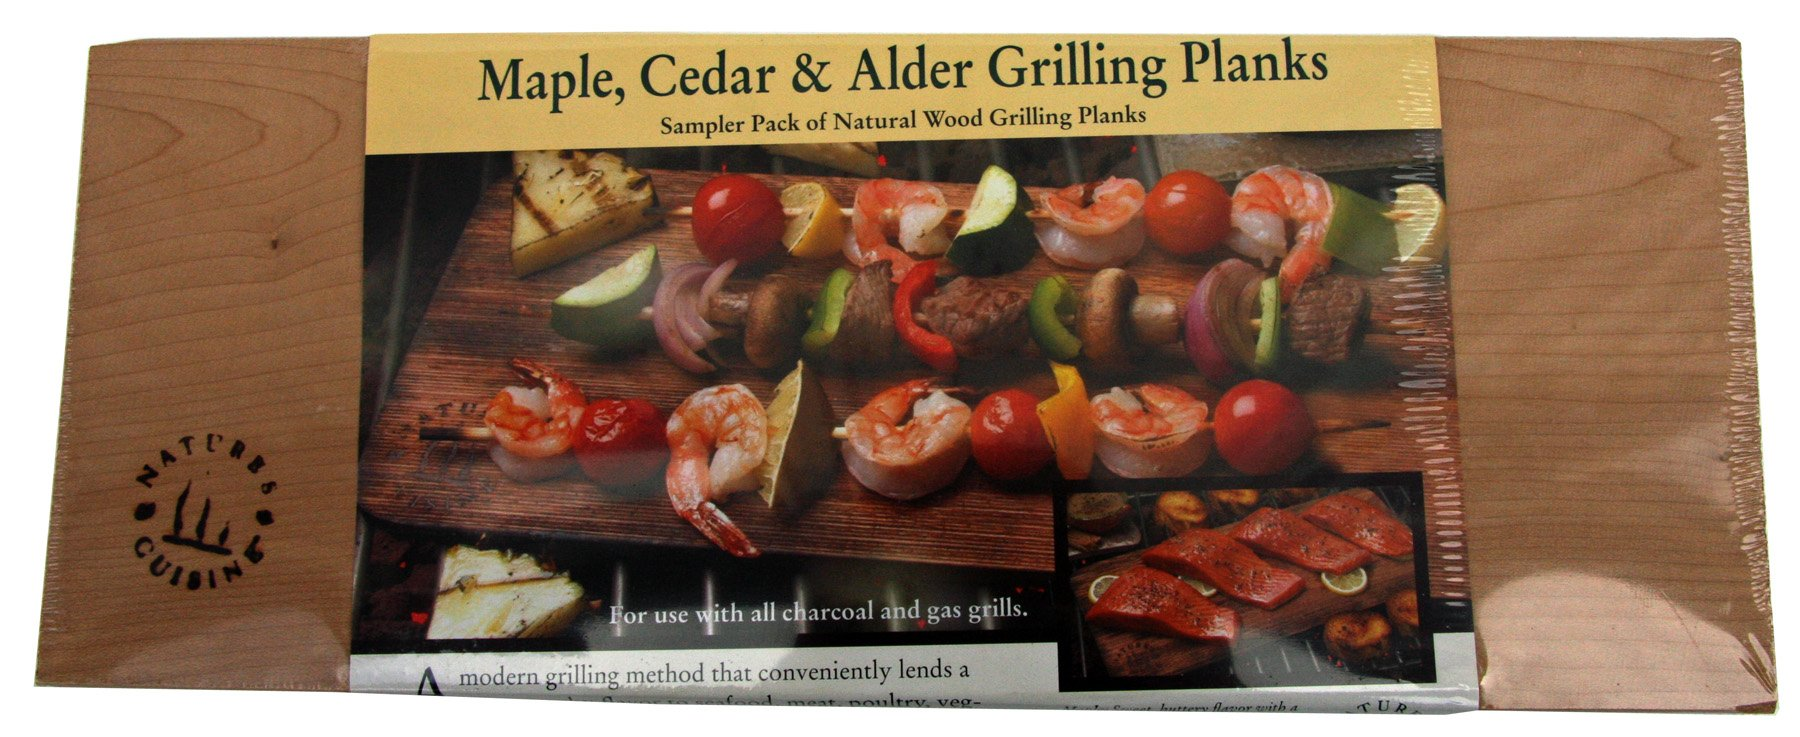 Nature's Cuisine NC009 14 by 5-1/2-Inch Cedar/Alder/Maple Combo Outdoor Grilling Plank, 1 Each